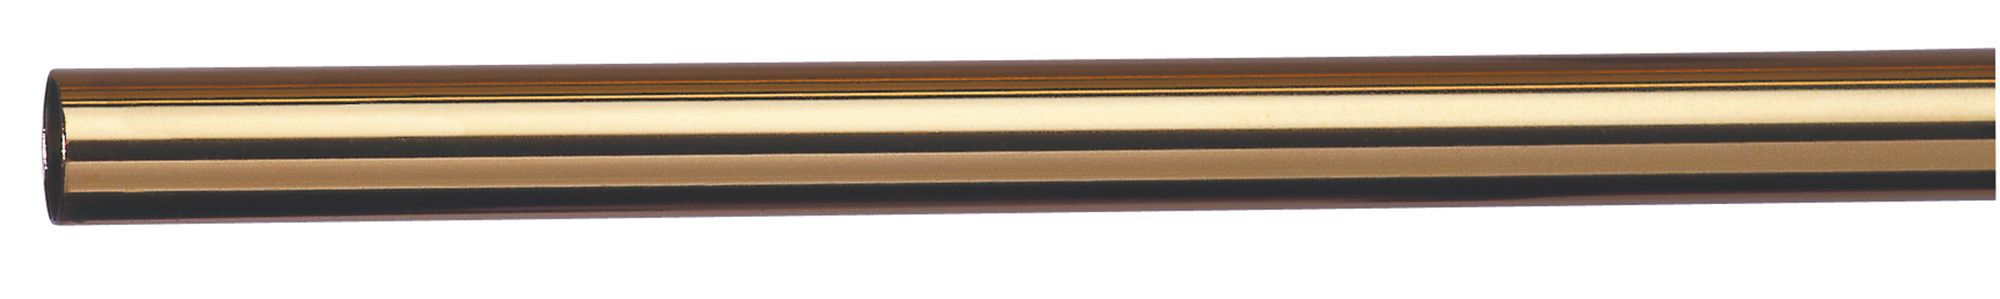 Colorail Brass Effect Steel Round Tube (l)2.4m